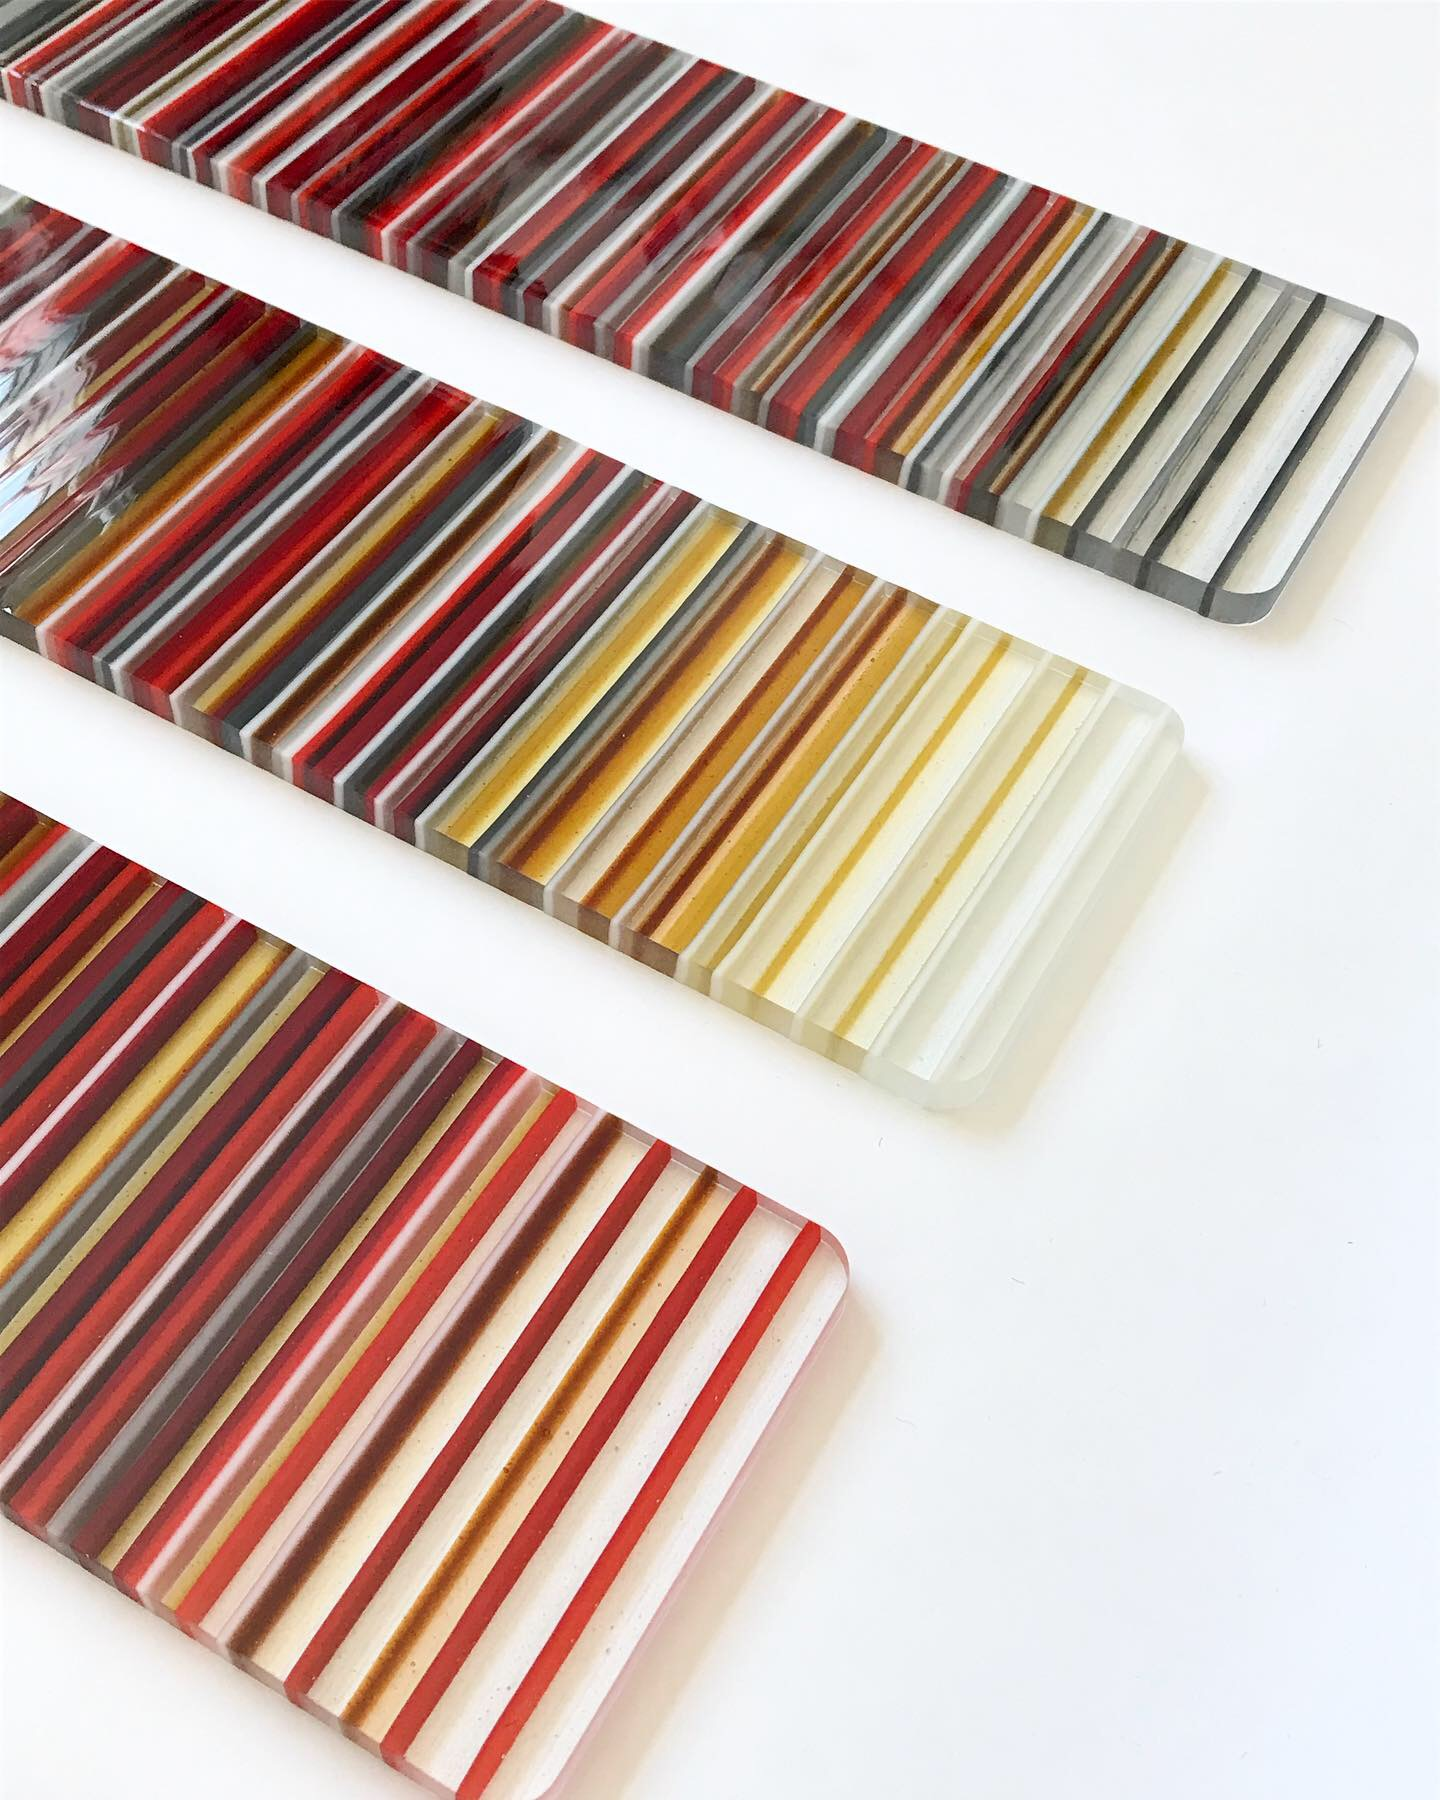 Sseries of four striped wall panels.